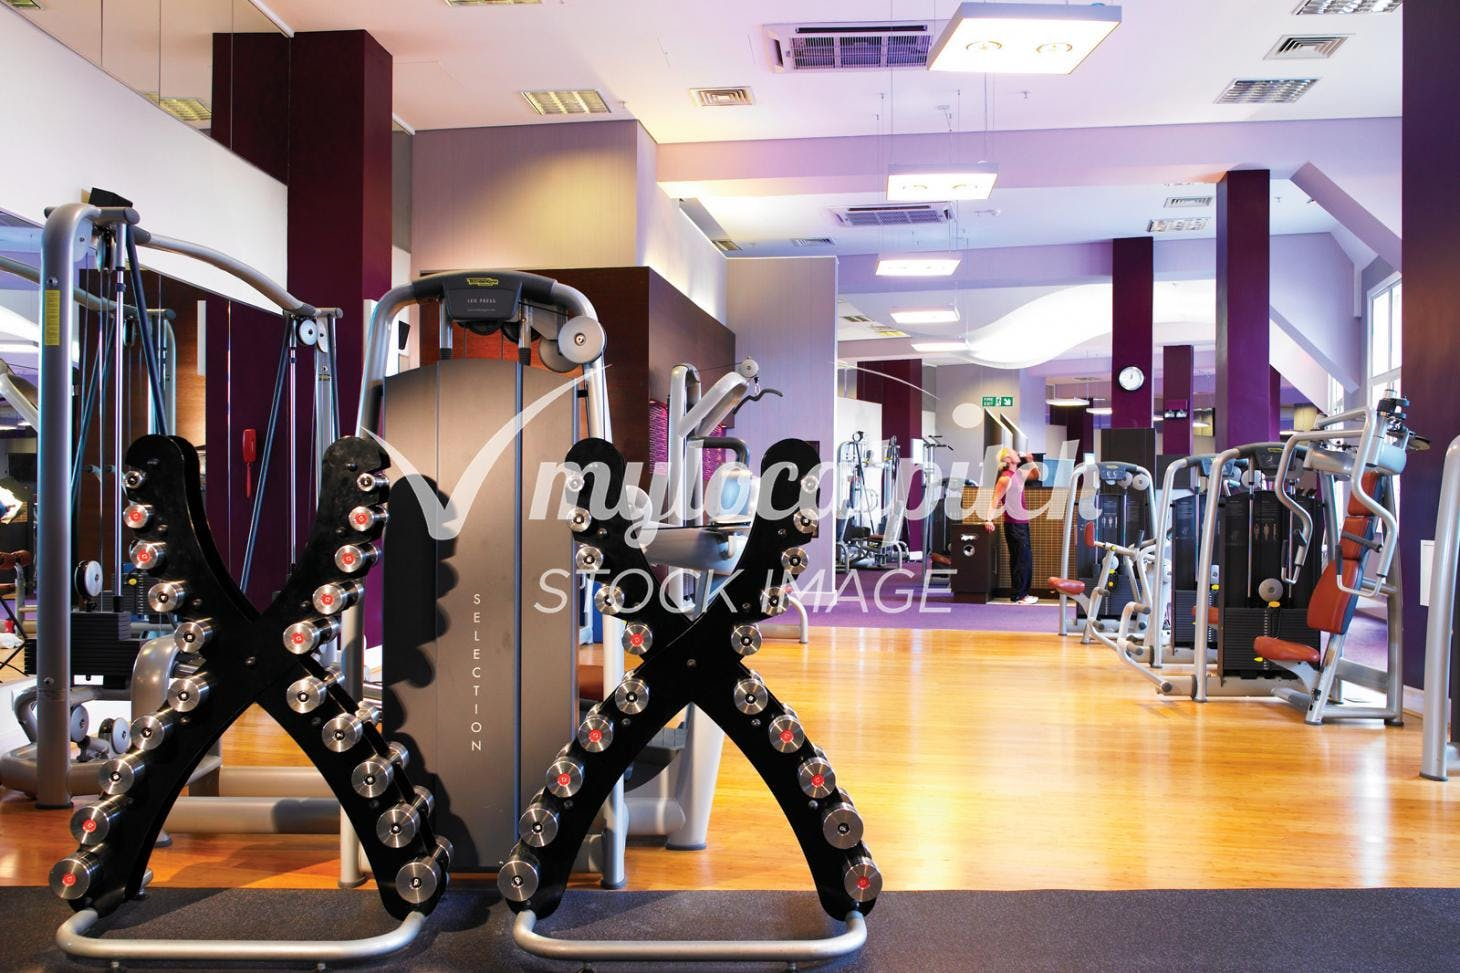 Wimbledon Club Gym gym